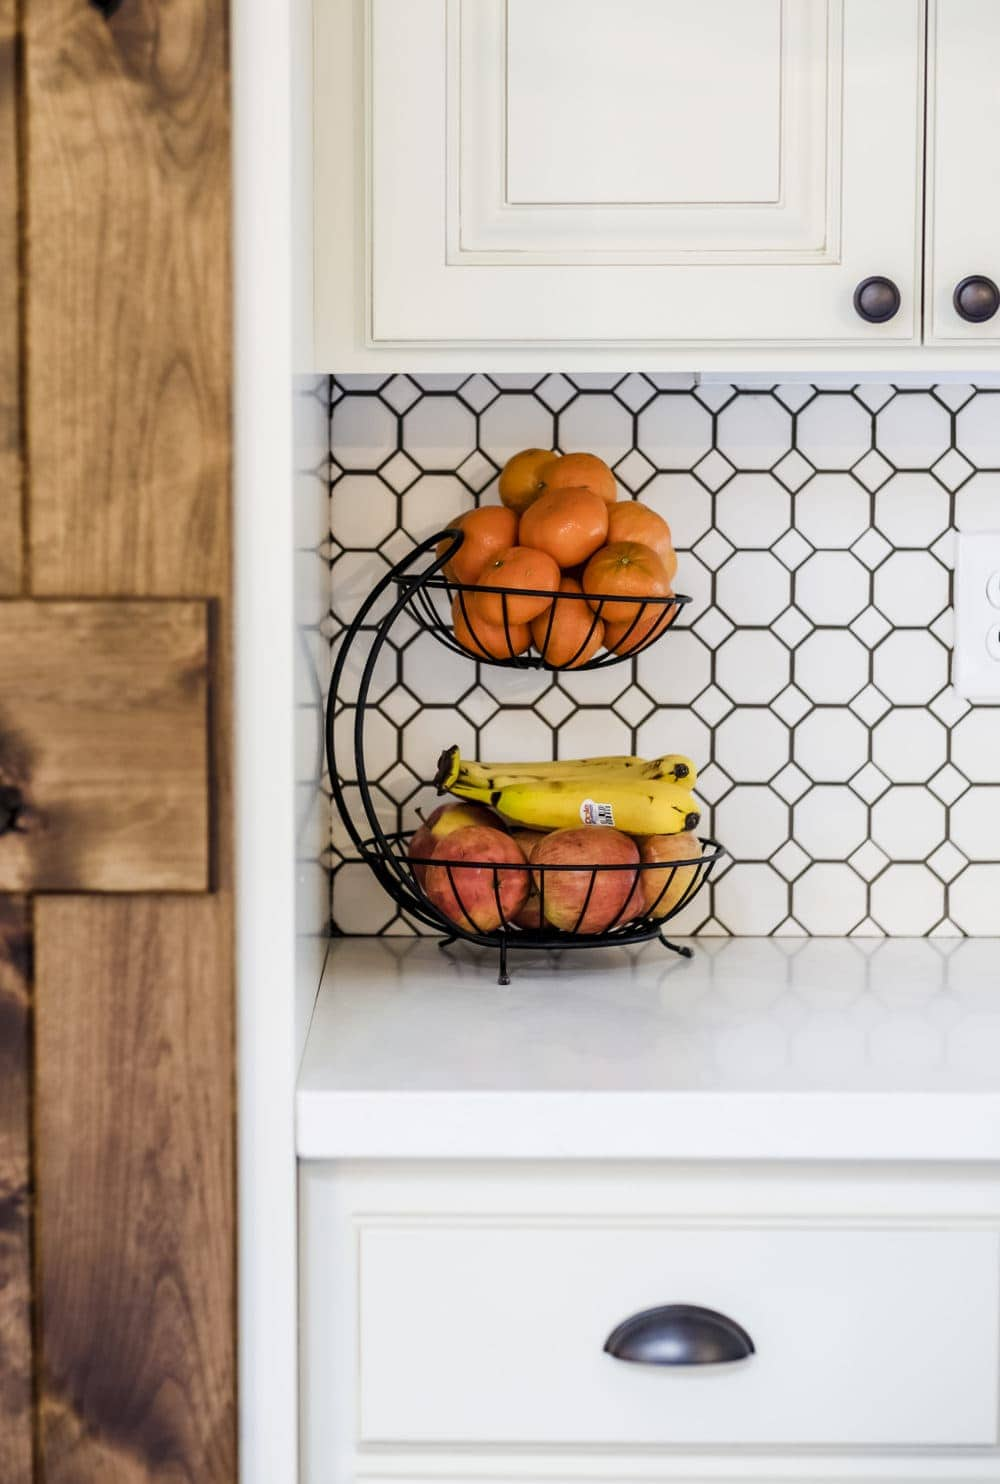 Black stacked fruit basket with oranges and bananas against white penny tile backsplash